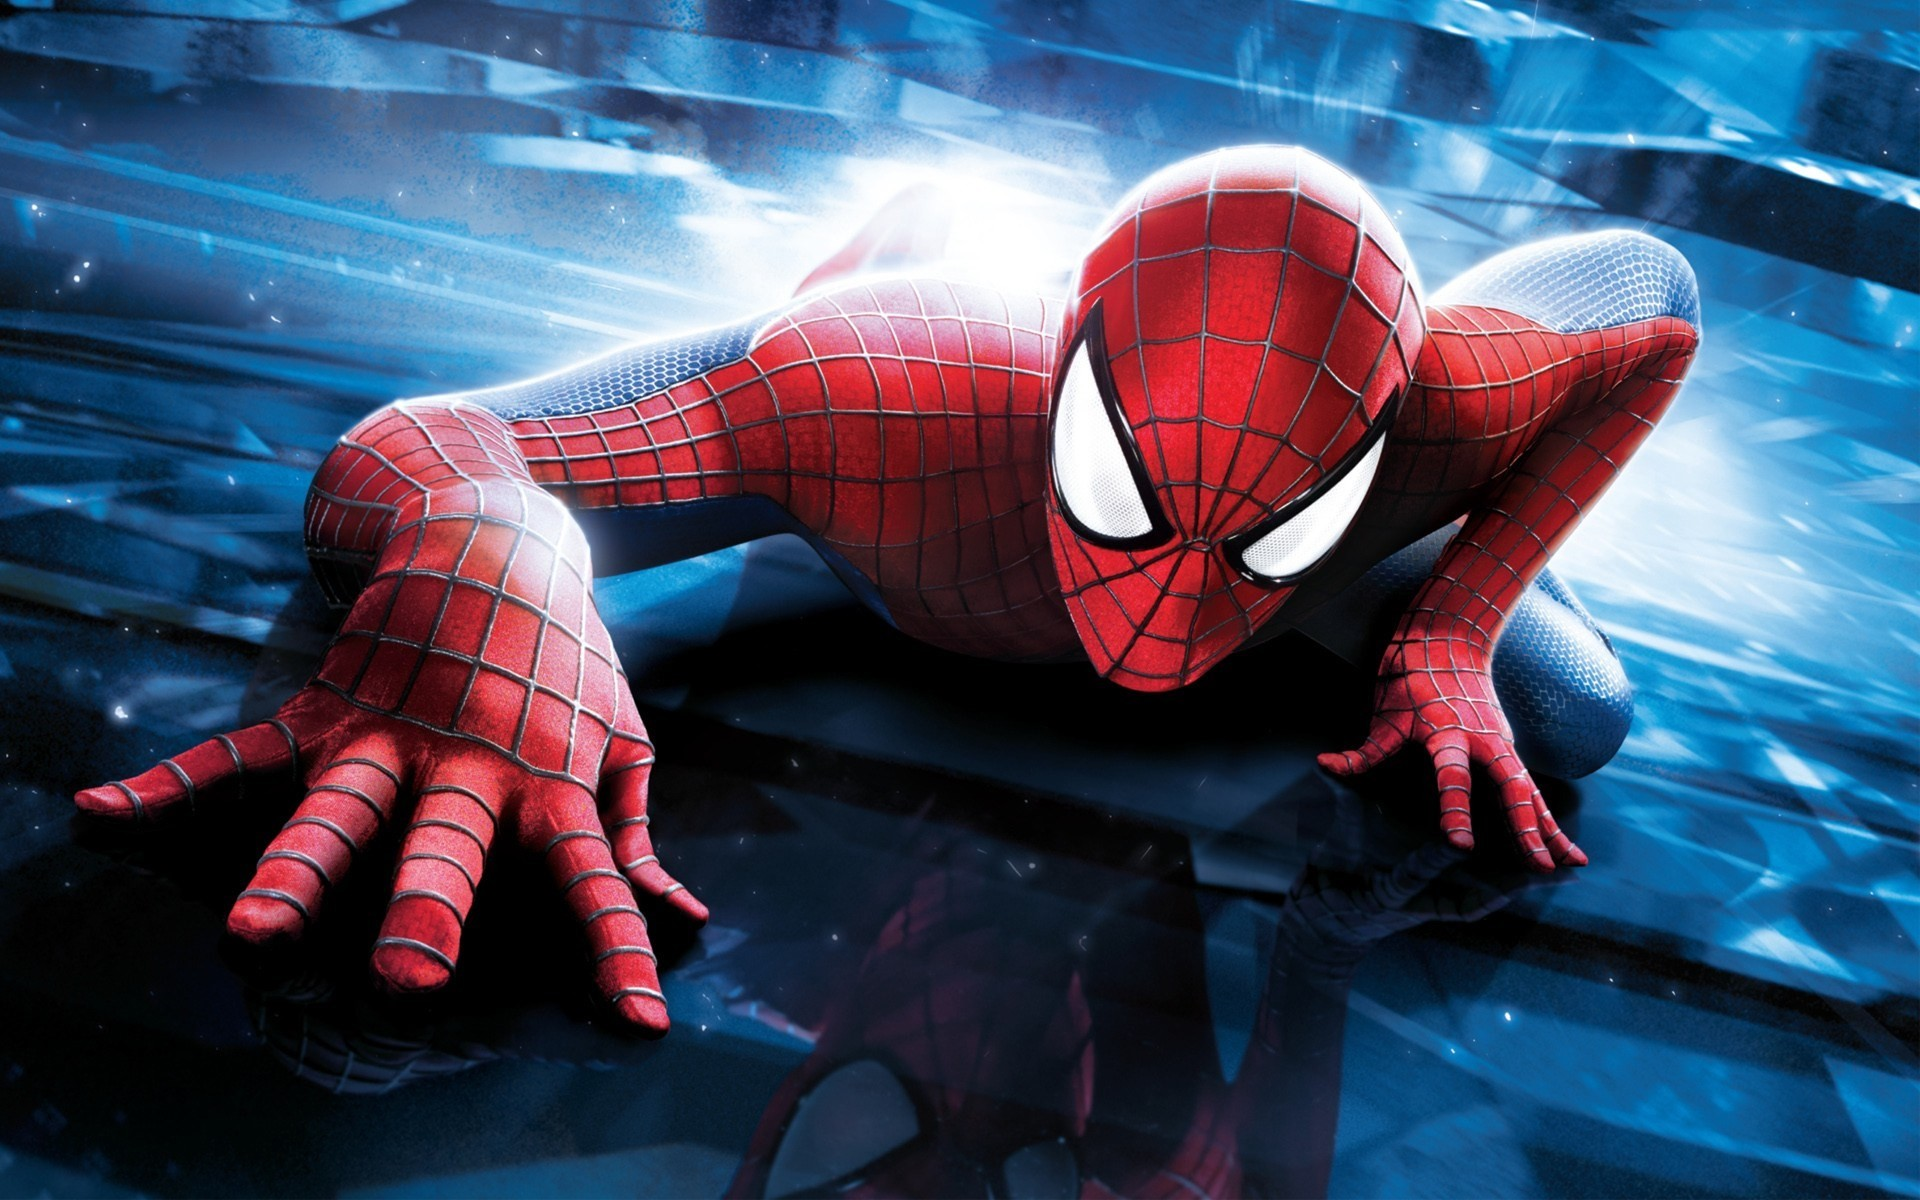 Spiderman Wallpaper Hd 1080p Posted By Ryan Simpson